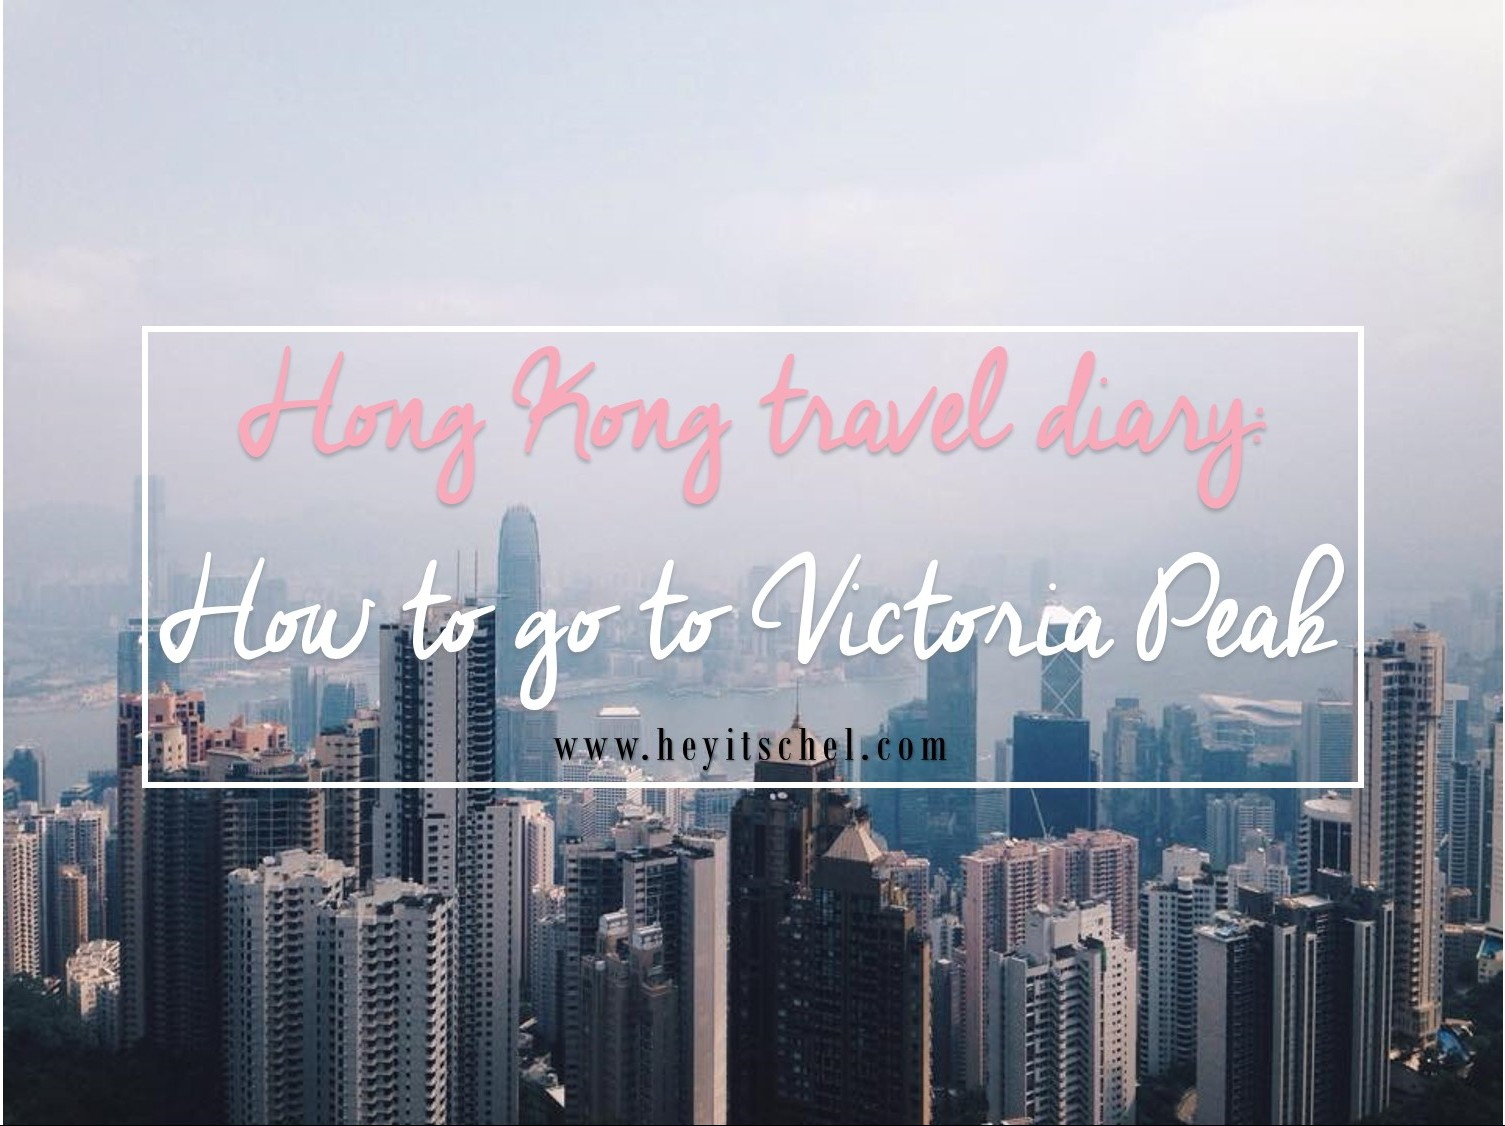 How to go to The Peak in Hong Kong